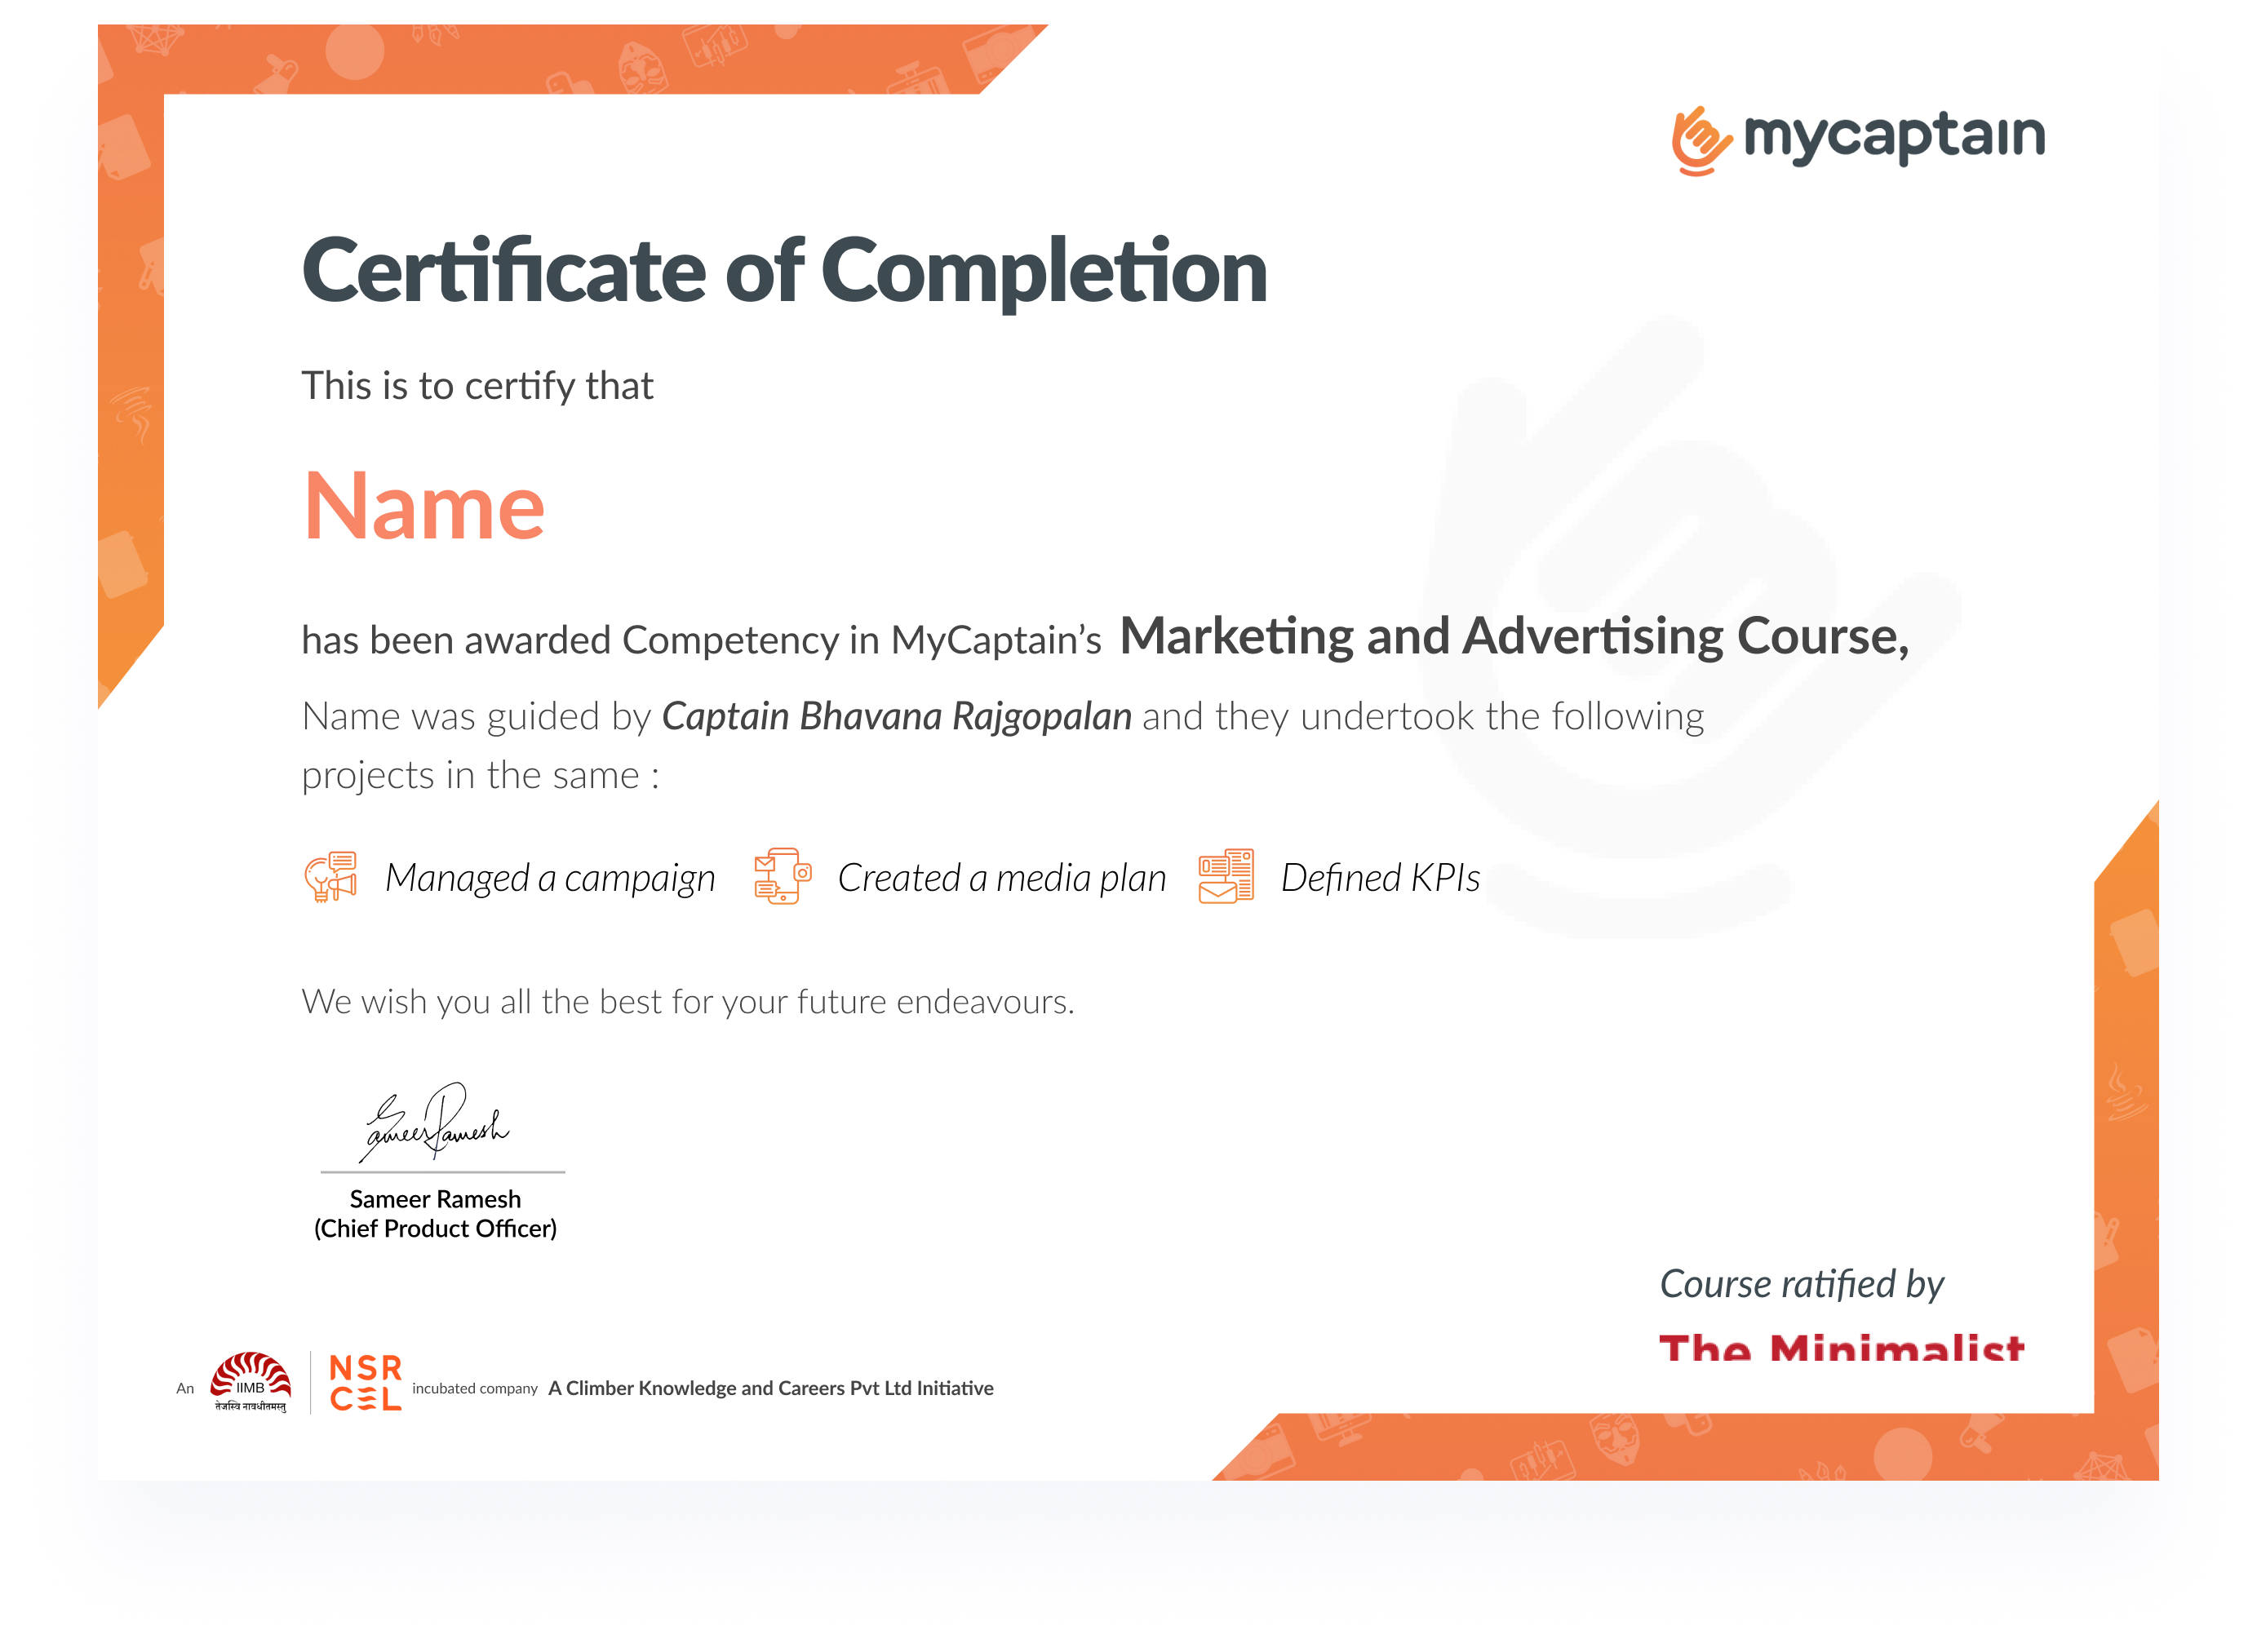 MyCaptain Certificate of Completion is a badge of professional proficiency, recognised by esteemed organisations